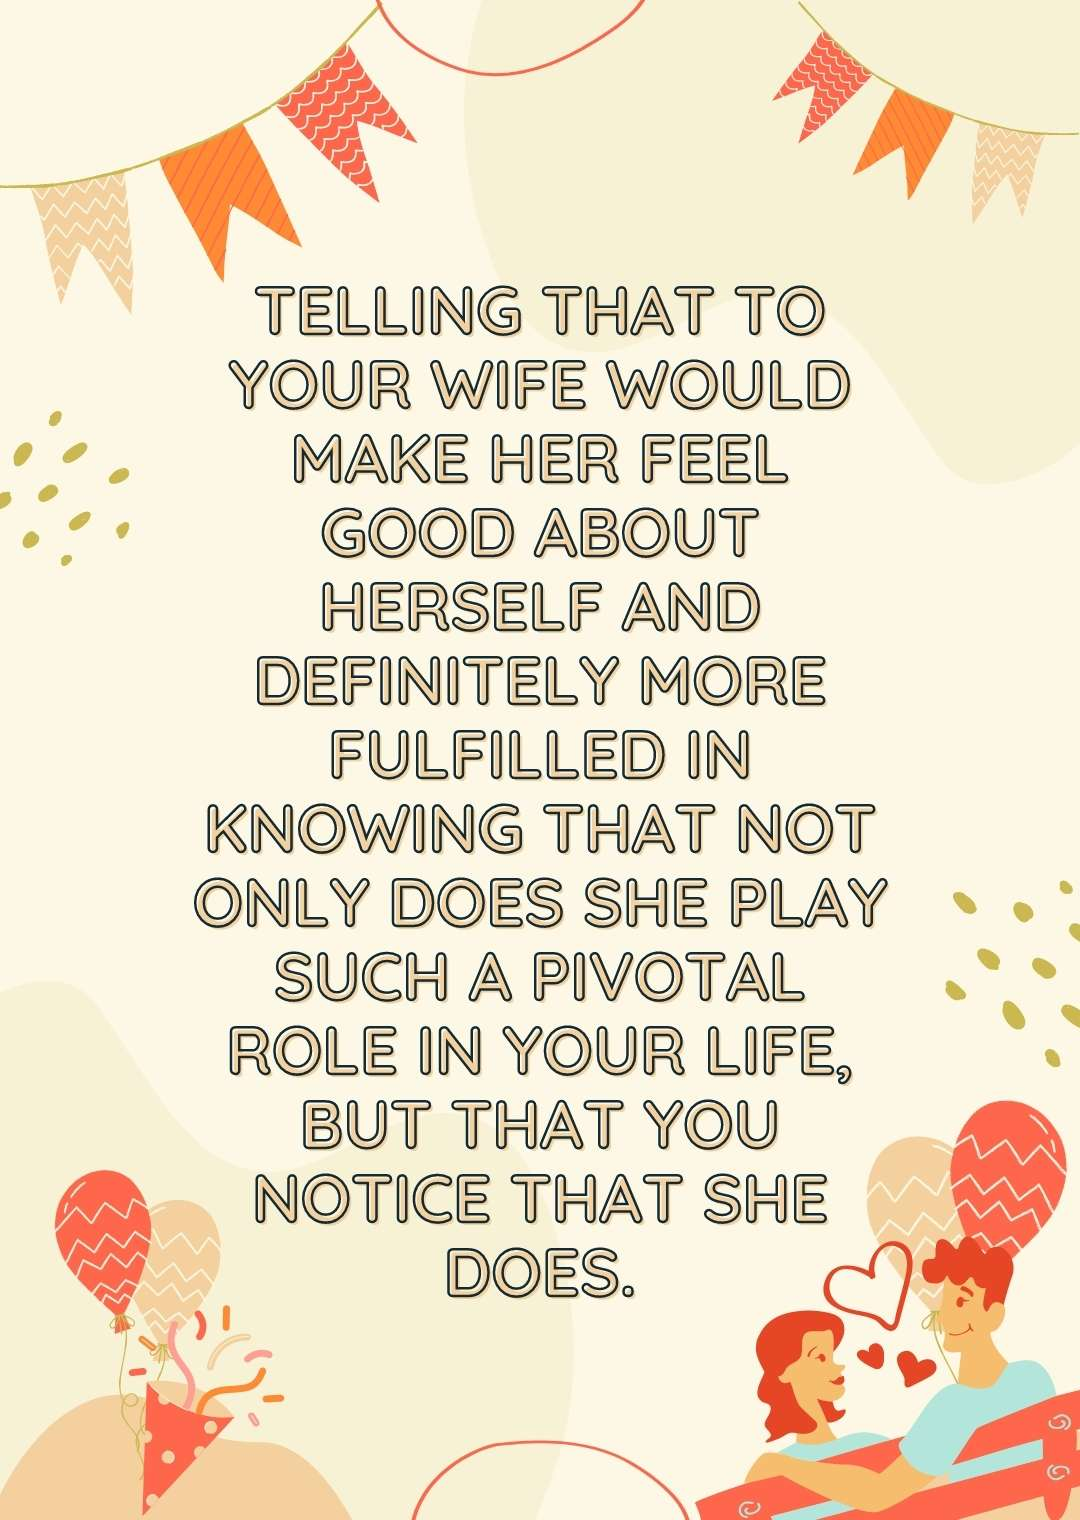 Telling that to your wife would make her feel good about herself and definitely more fulfilled in knowing that not only does she play such a pivotal role in your life, but that you notice that she does.